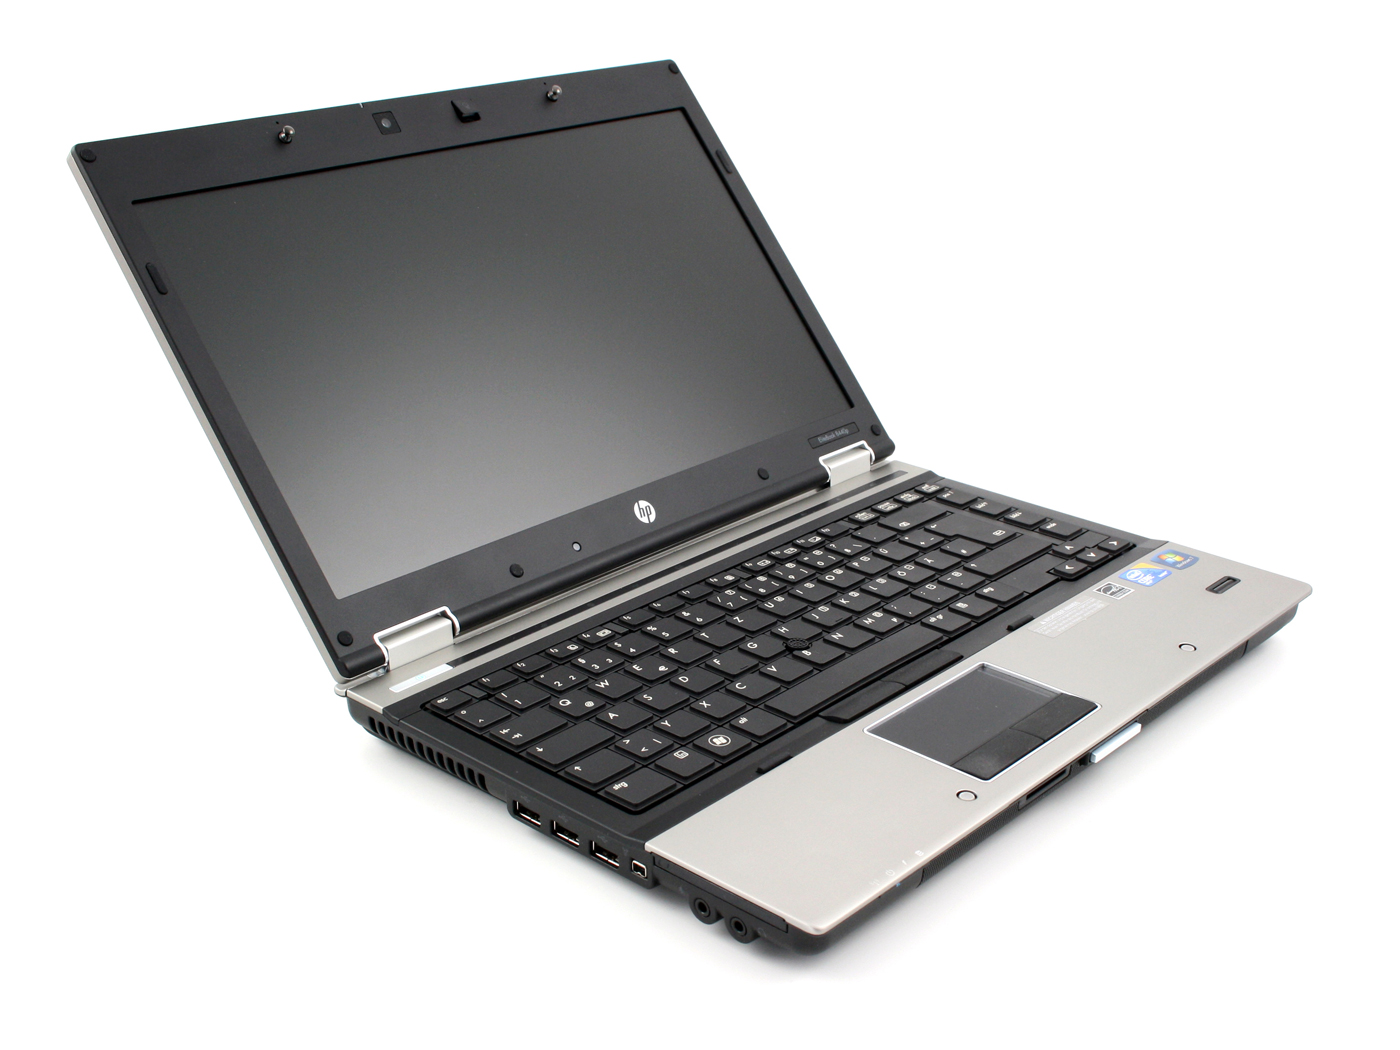 Hp Elitebook 8440p Wj681aw Notebookcheck Net External Reviews